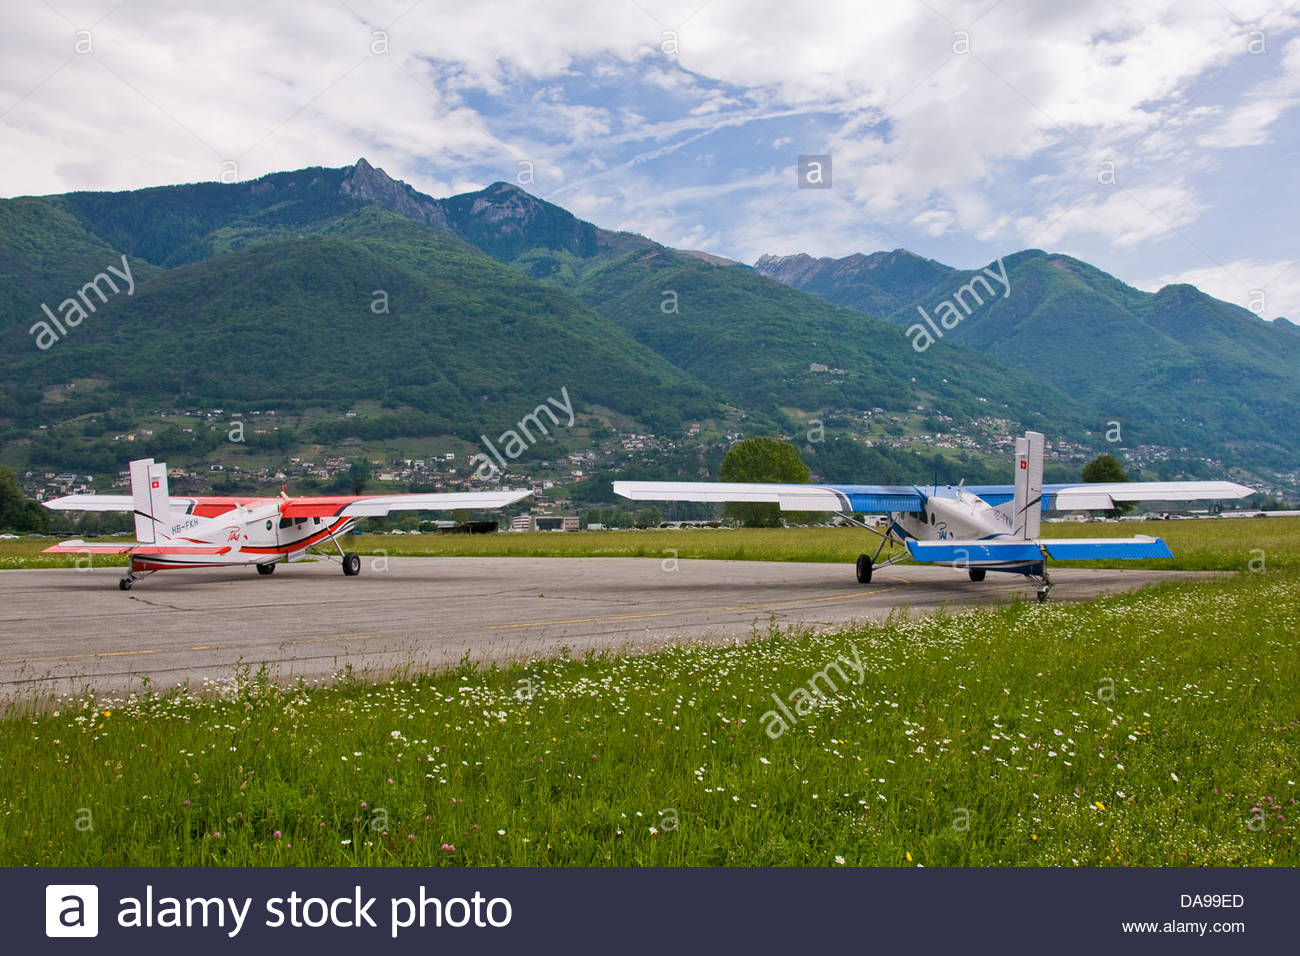 Airplanes - Stock Image